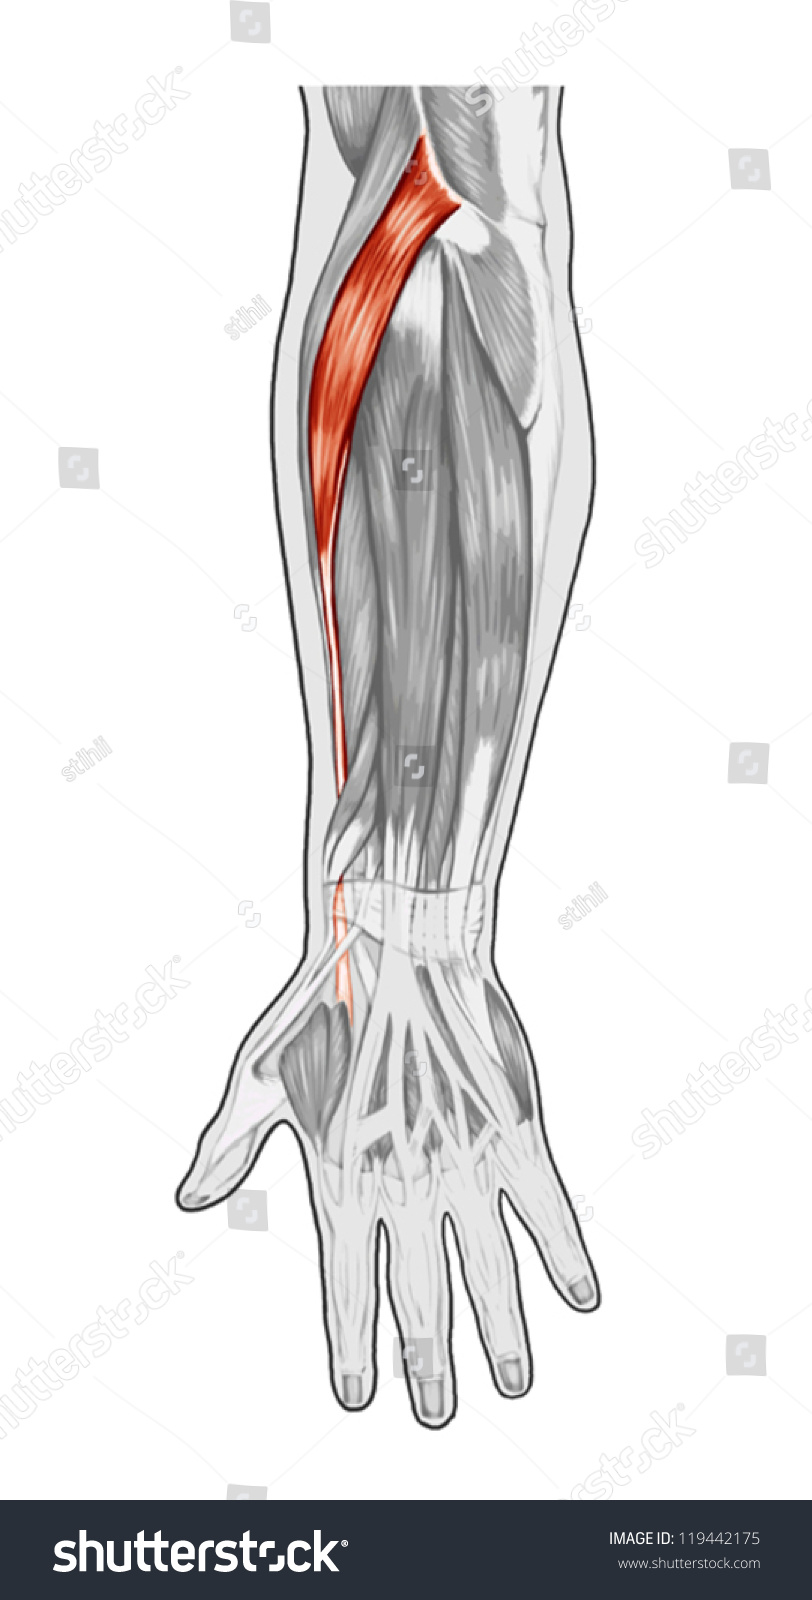 Anatomy Muscular System Hand Forearm Palm Stock Vector 119442175 ...